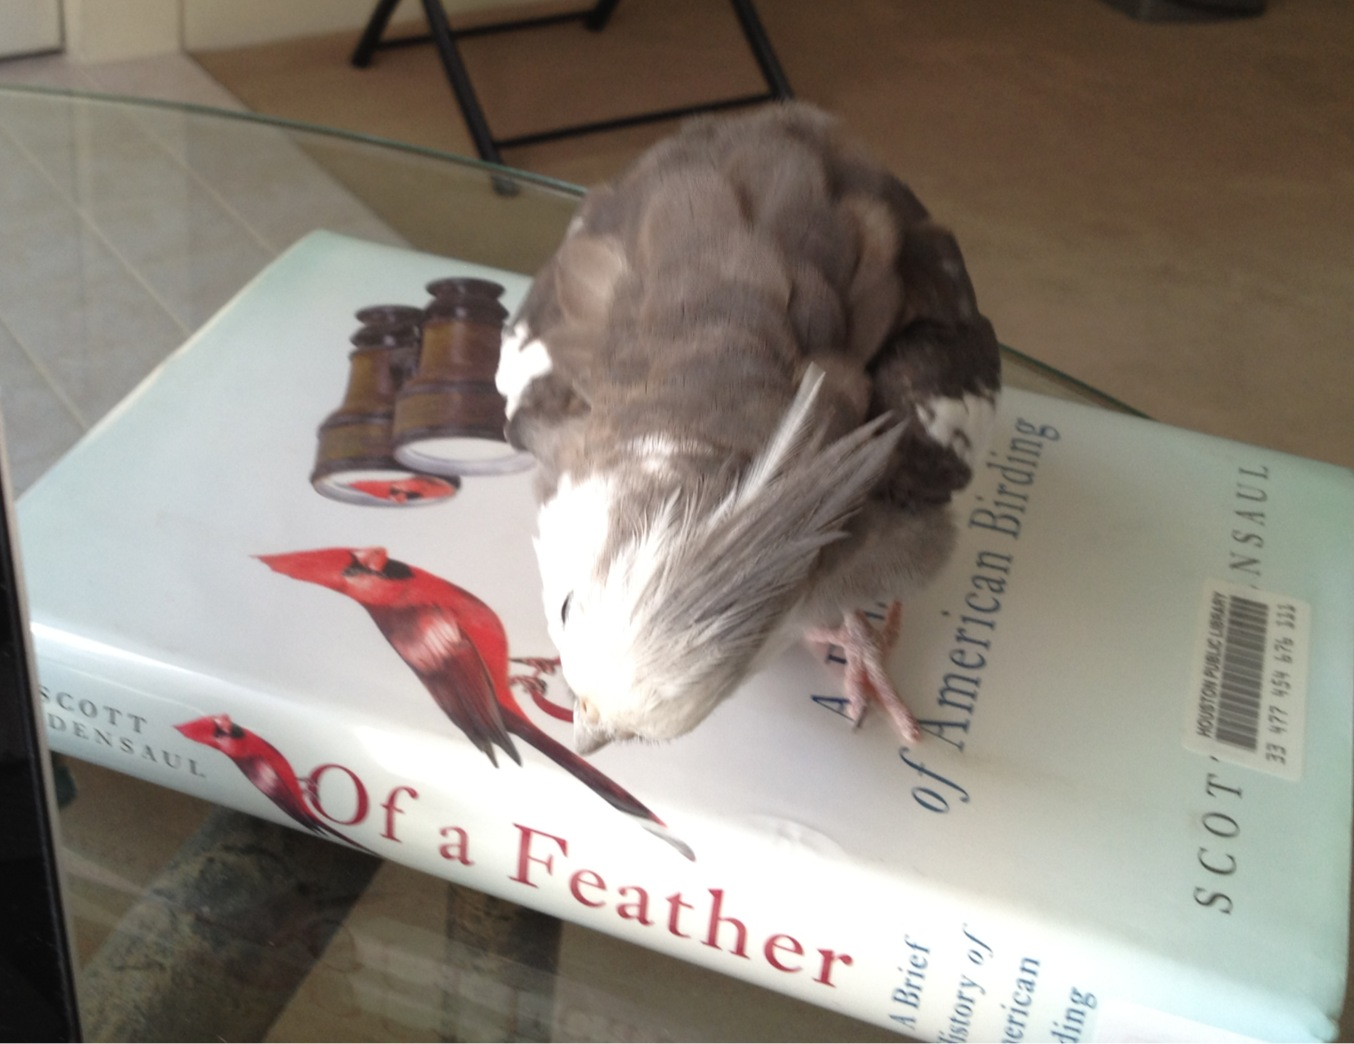 The literature expert (with feathers) gives the book o' the week a thorough review.